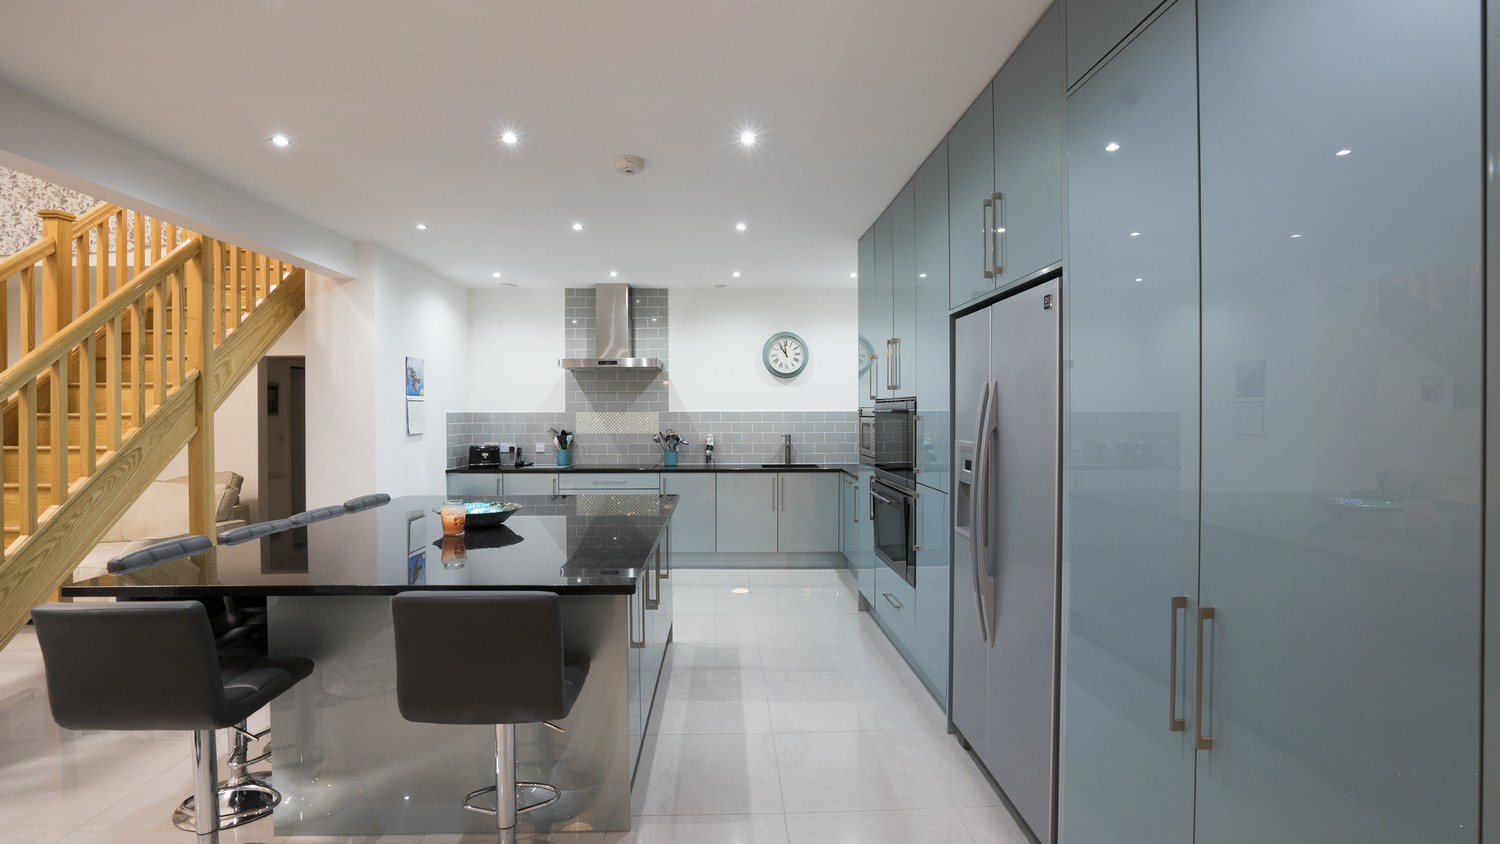 Alternative view of this stunning blue gloss kitchen with floor to ceiling cupboards and large American style fridge/freezer.